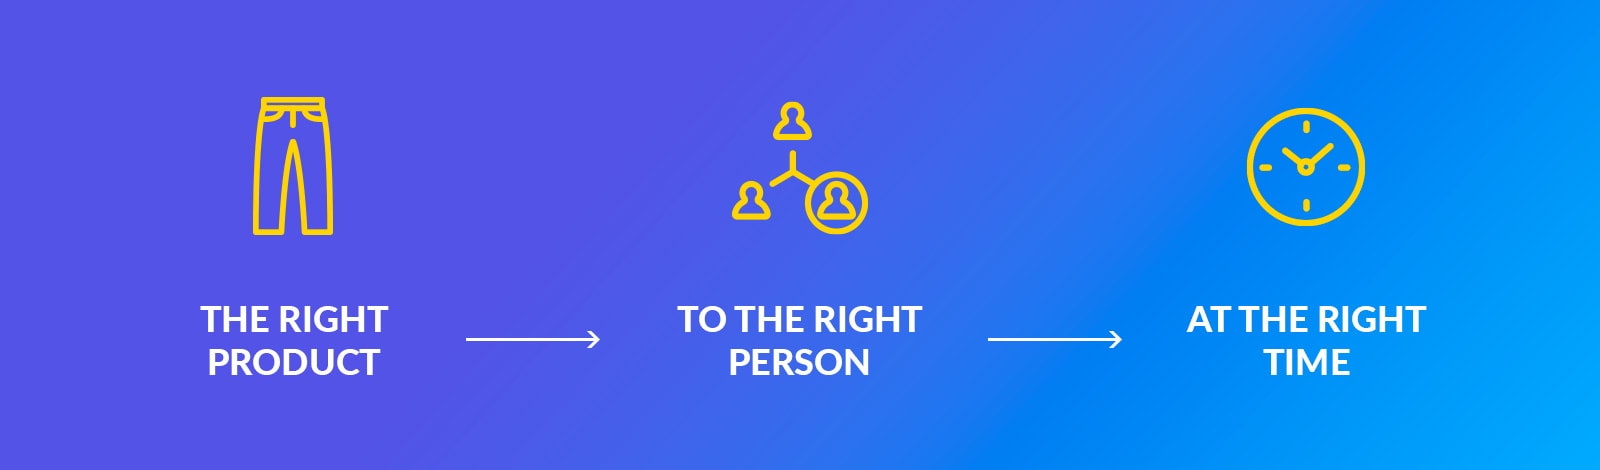 Right Product, Right Place, Right Person, Right Time